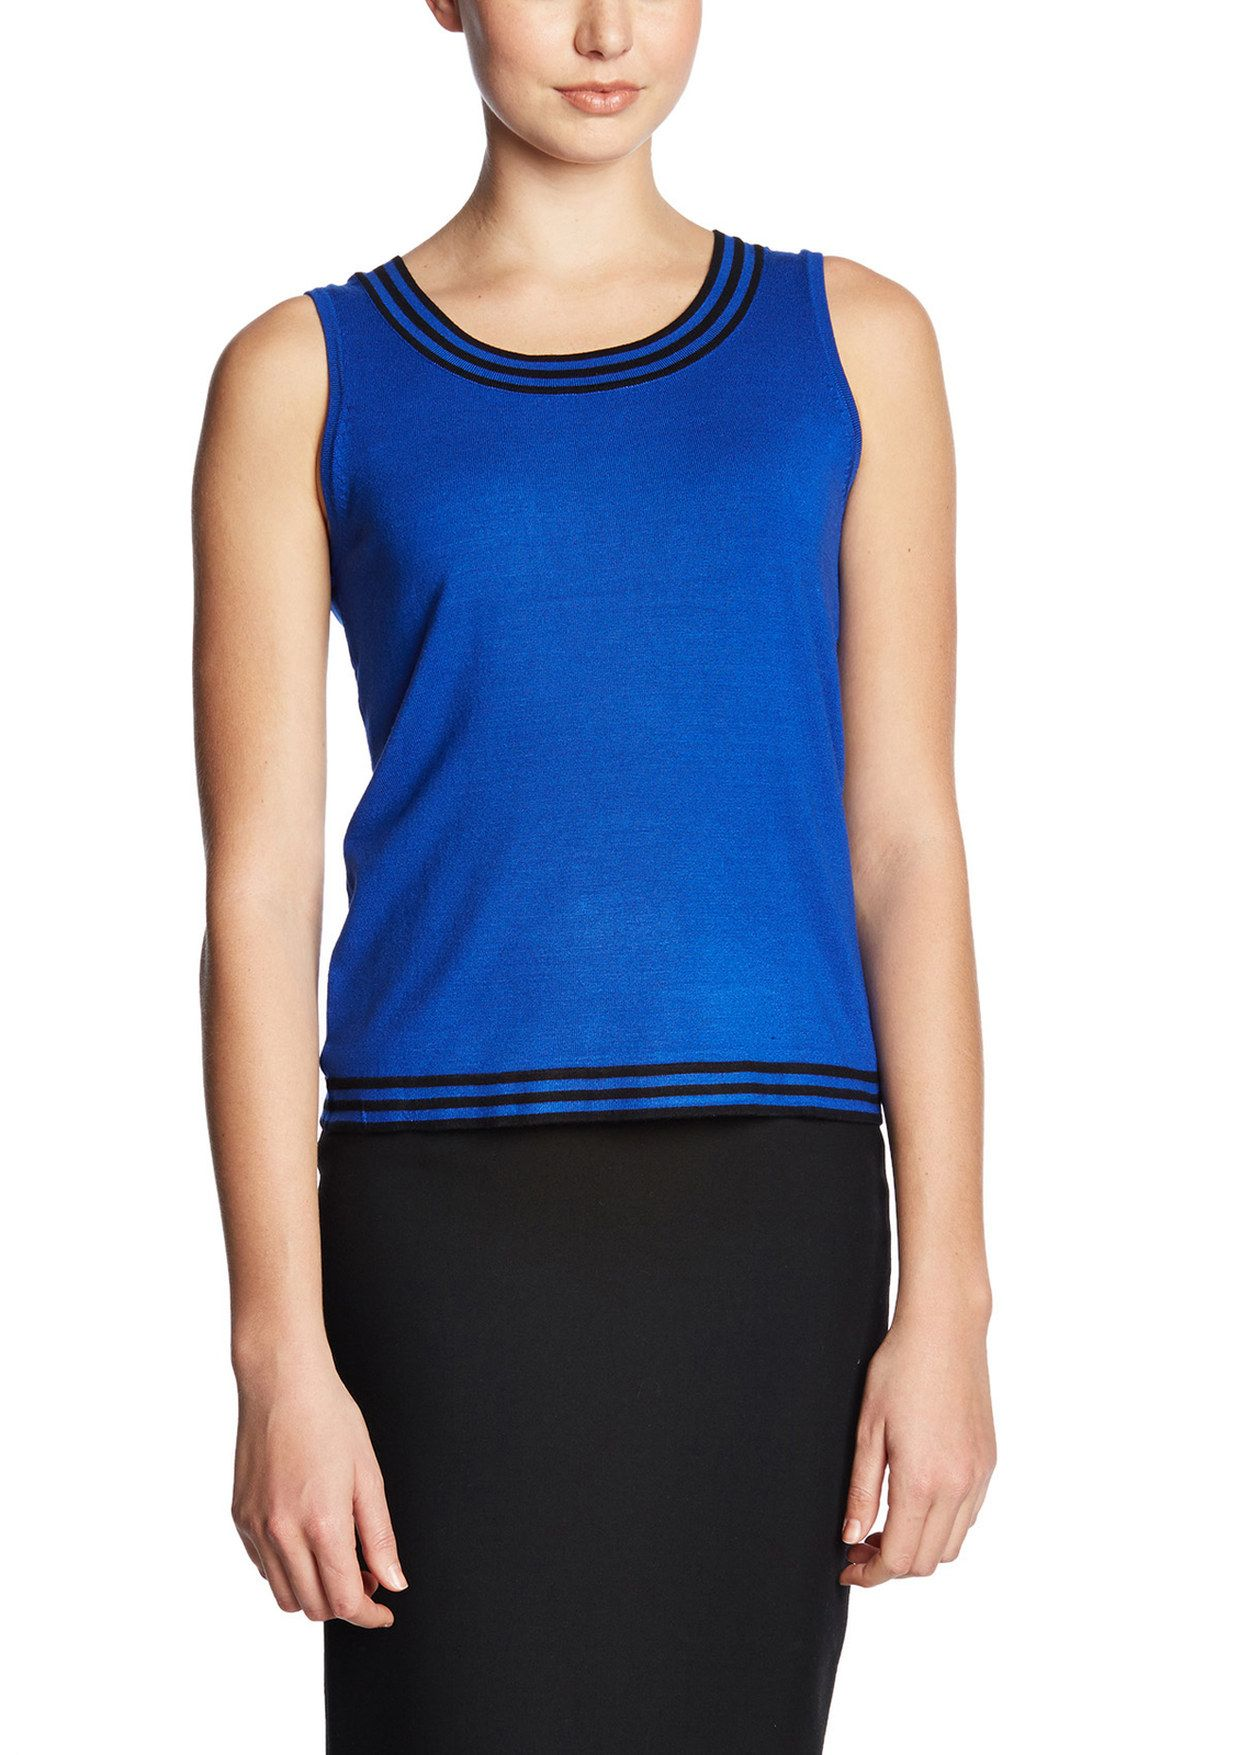 CABLE & GAUGE Scoop Neck Shell with Tipping   ideel ($19.99, M, vest-it)